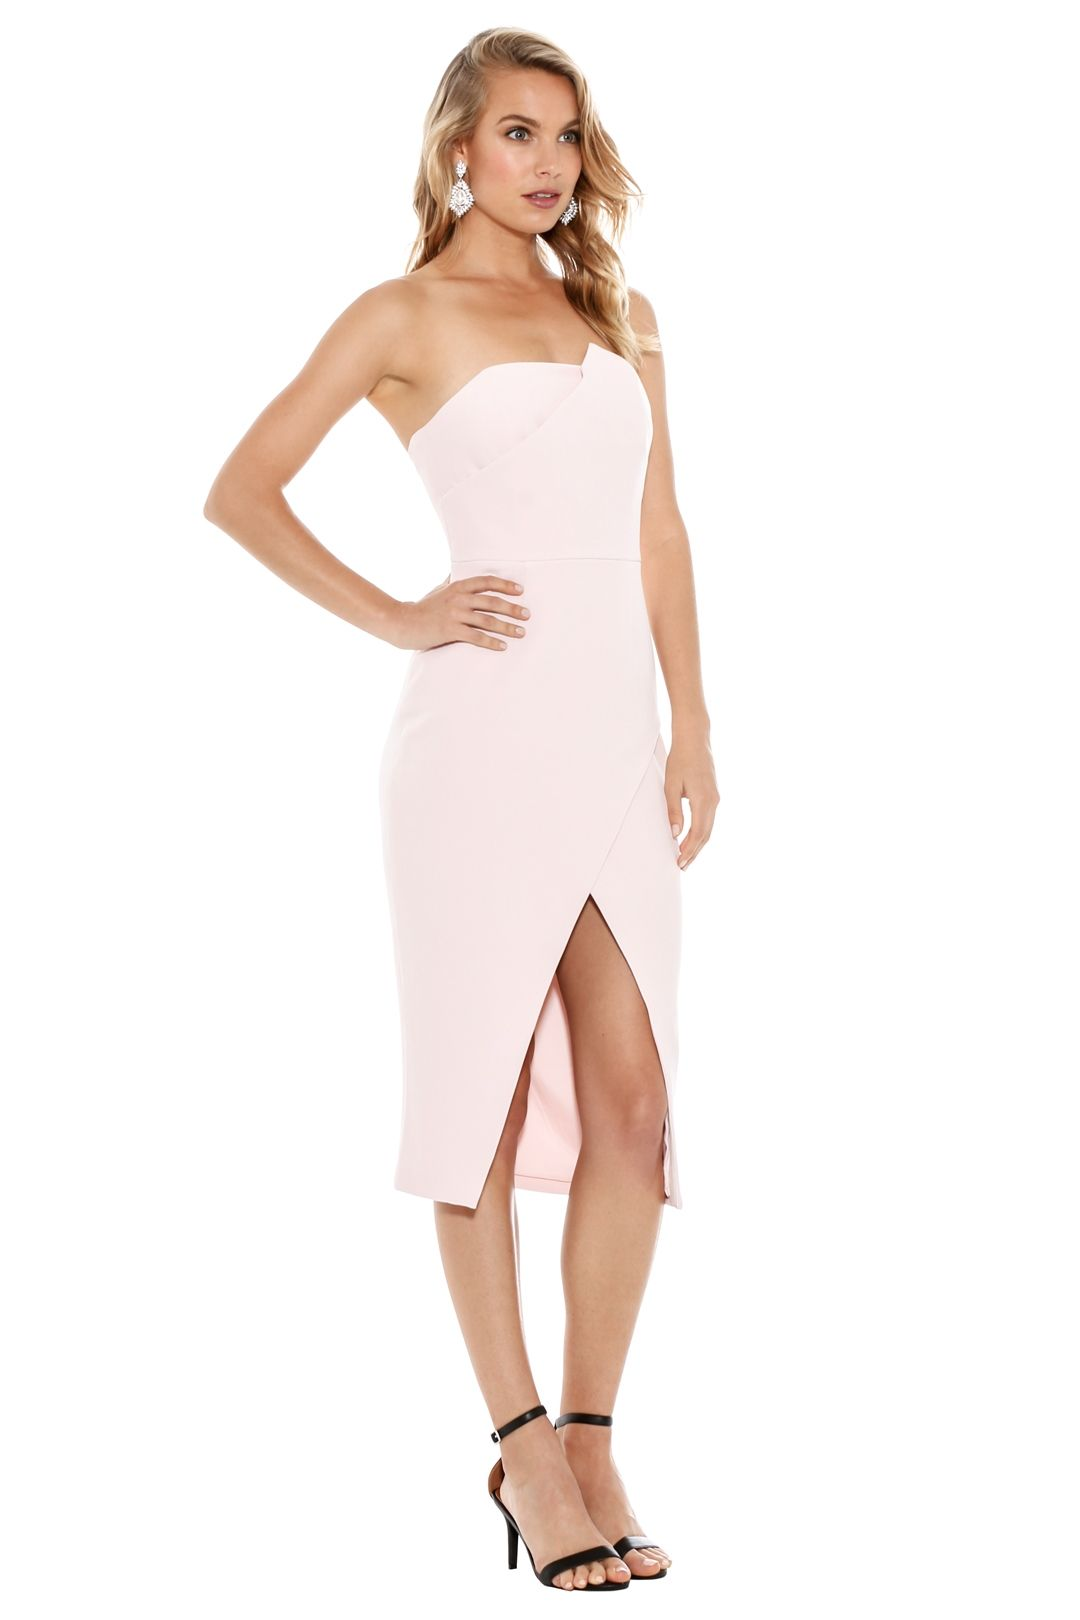 Talulah - Could It Be Midi Dress - Light Pink - Side